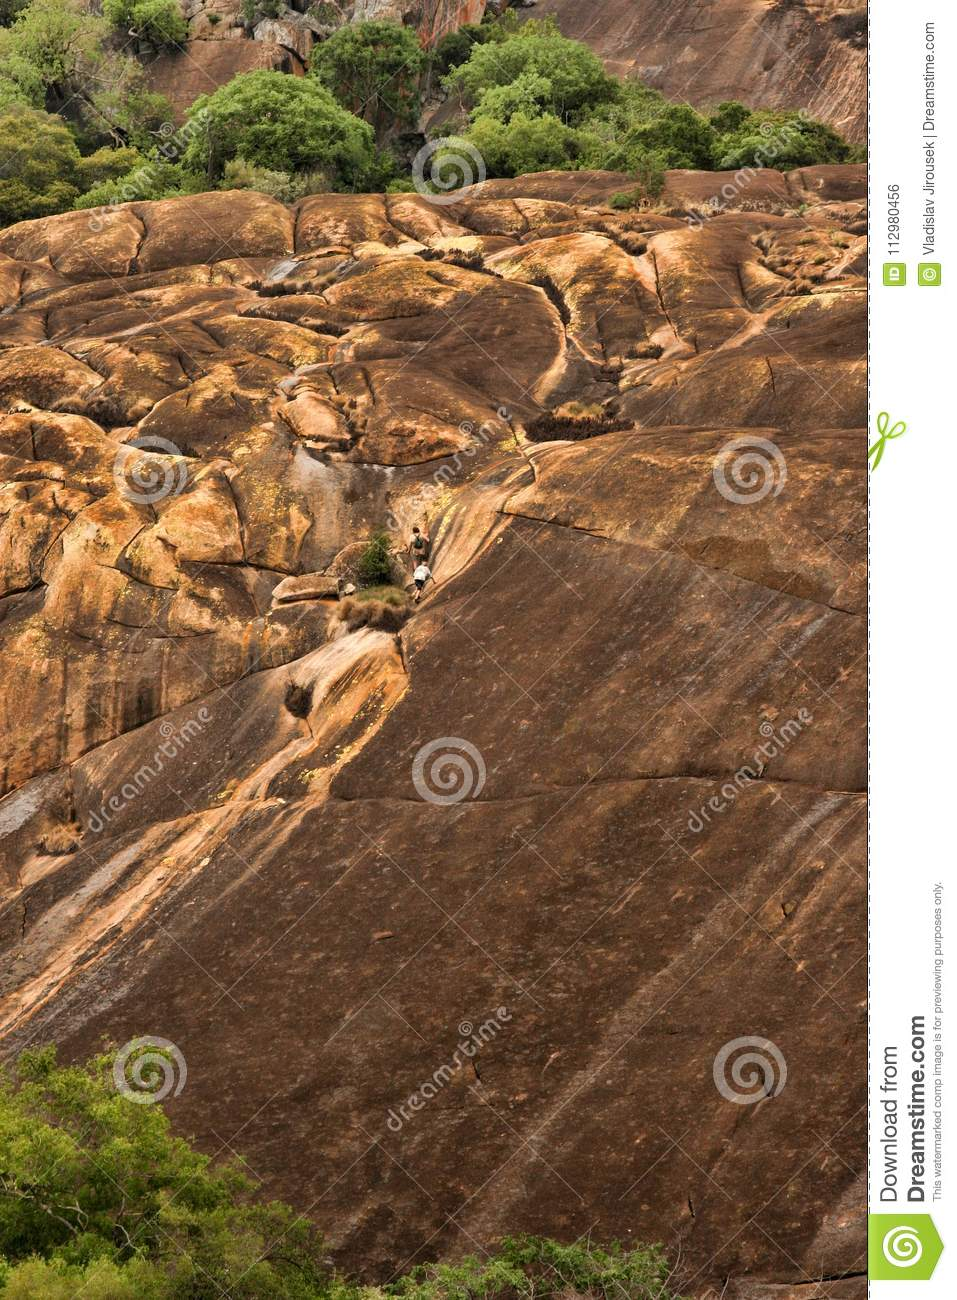 Picturesque rock formations of the Matopos National Park, Zimbabwe